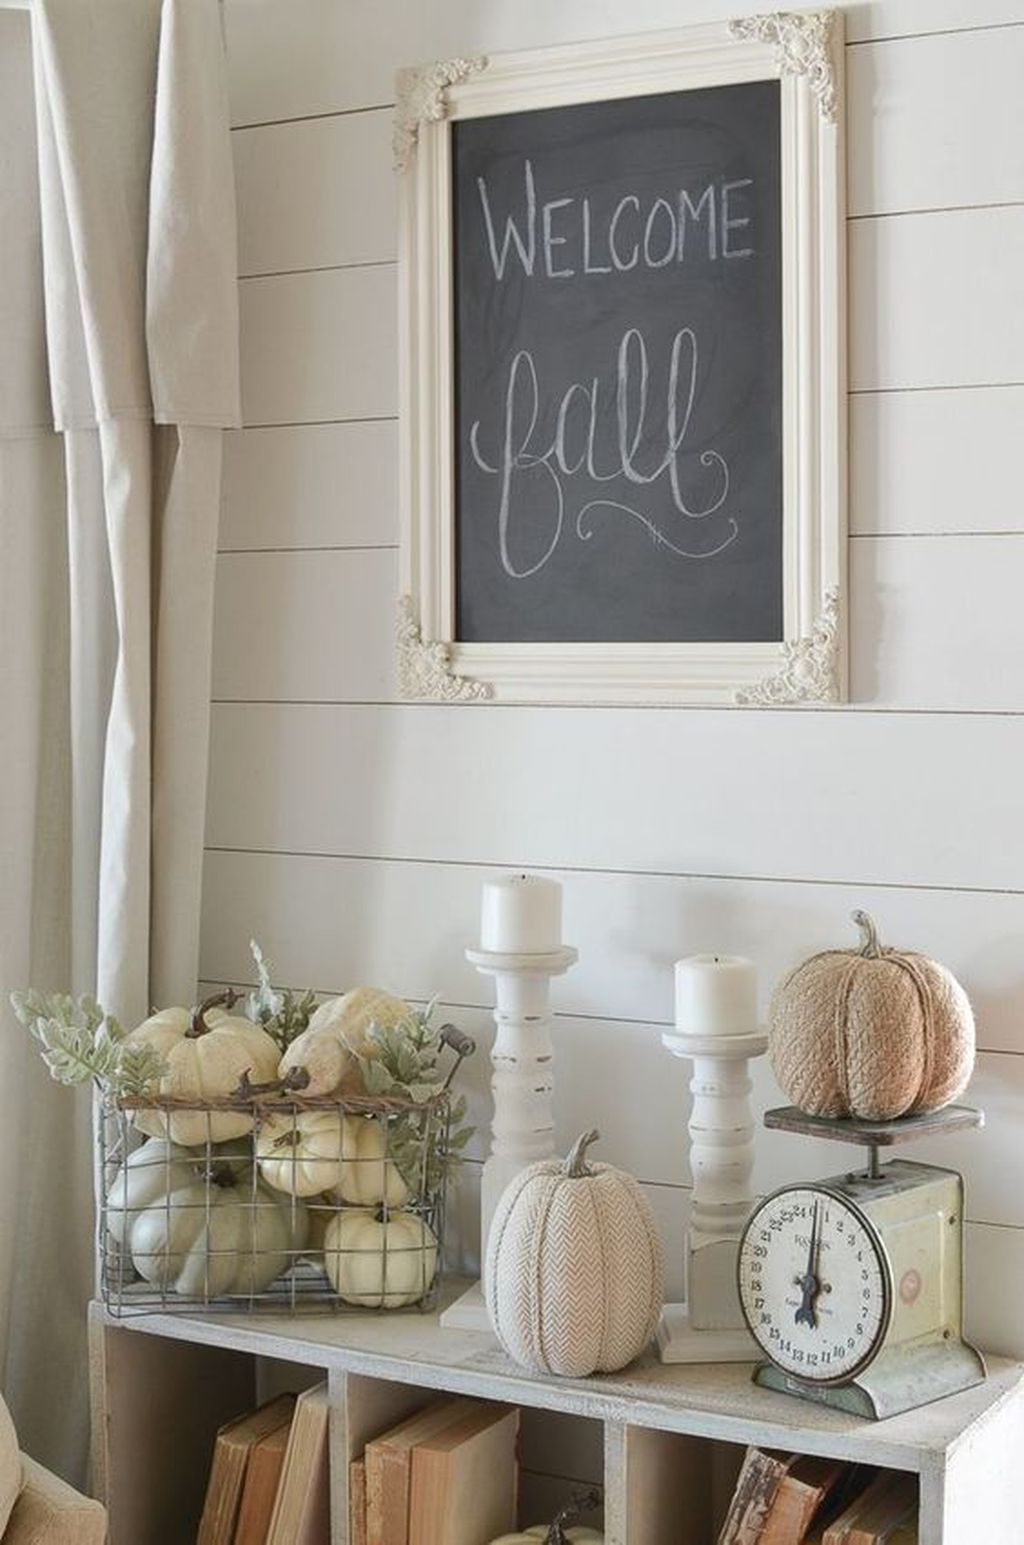 Inspiring Home Decor Design Ideas In Fall This Year 24